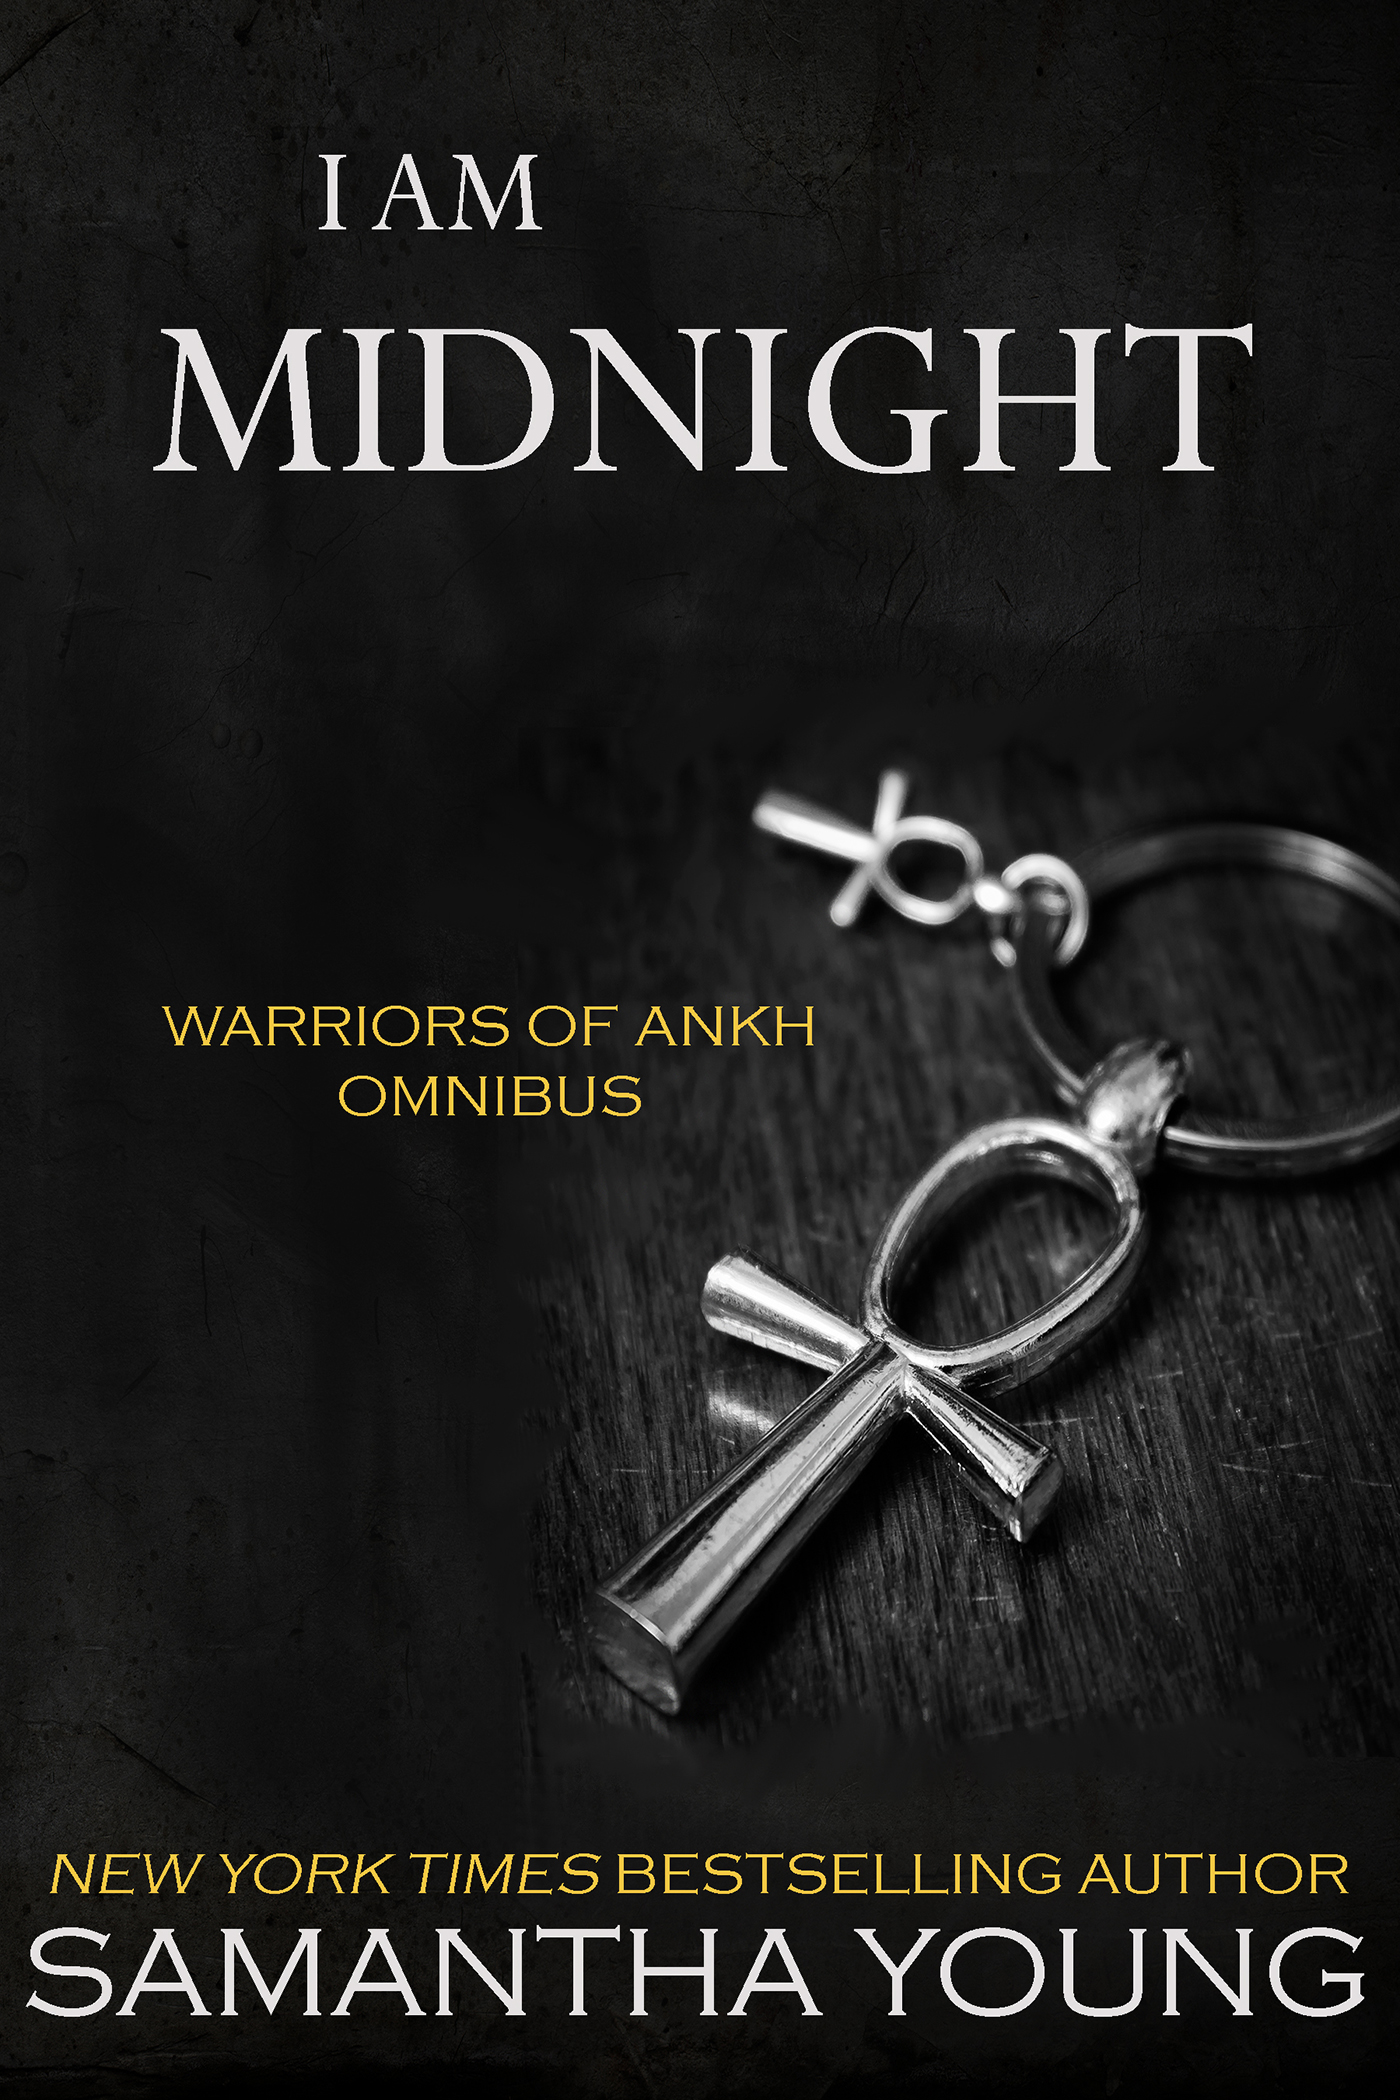 Samantha Young - I Am Midnight (Warriors of Ankh Omnibus Edition)